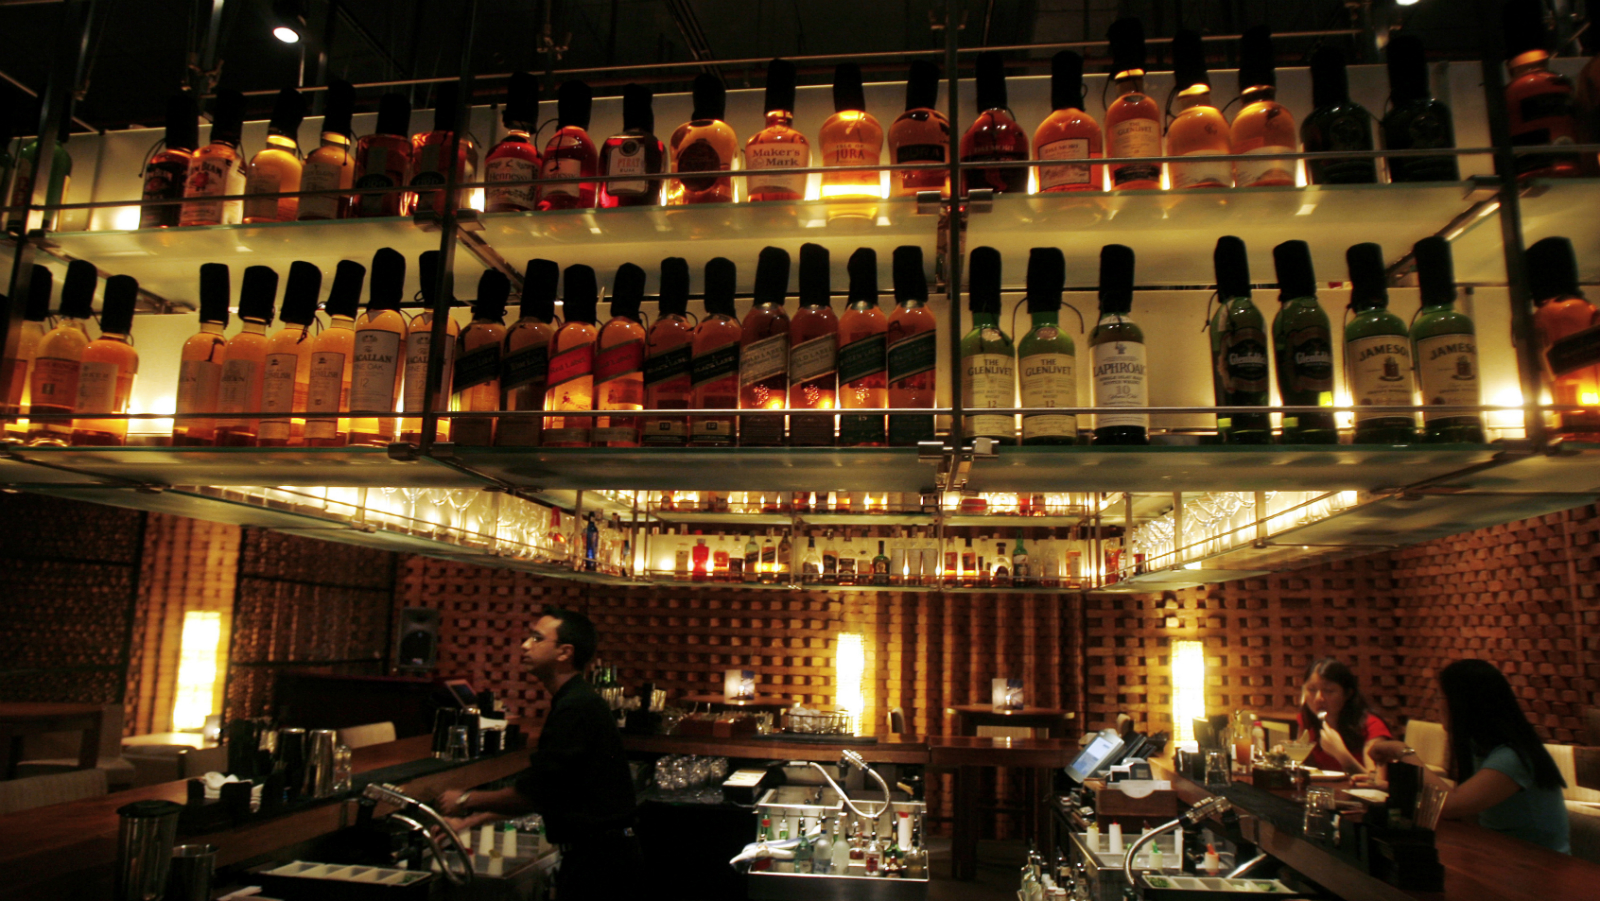 A bartender prepares a drink for customers at a bar in a luxury hotel in Mumbai November 22, 2008.